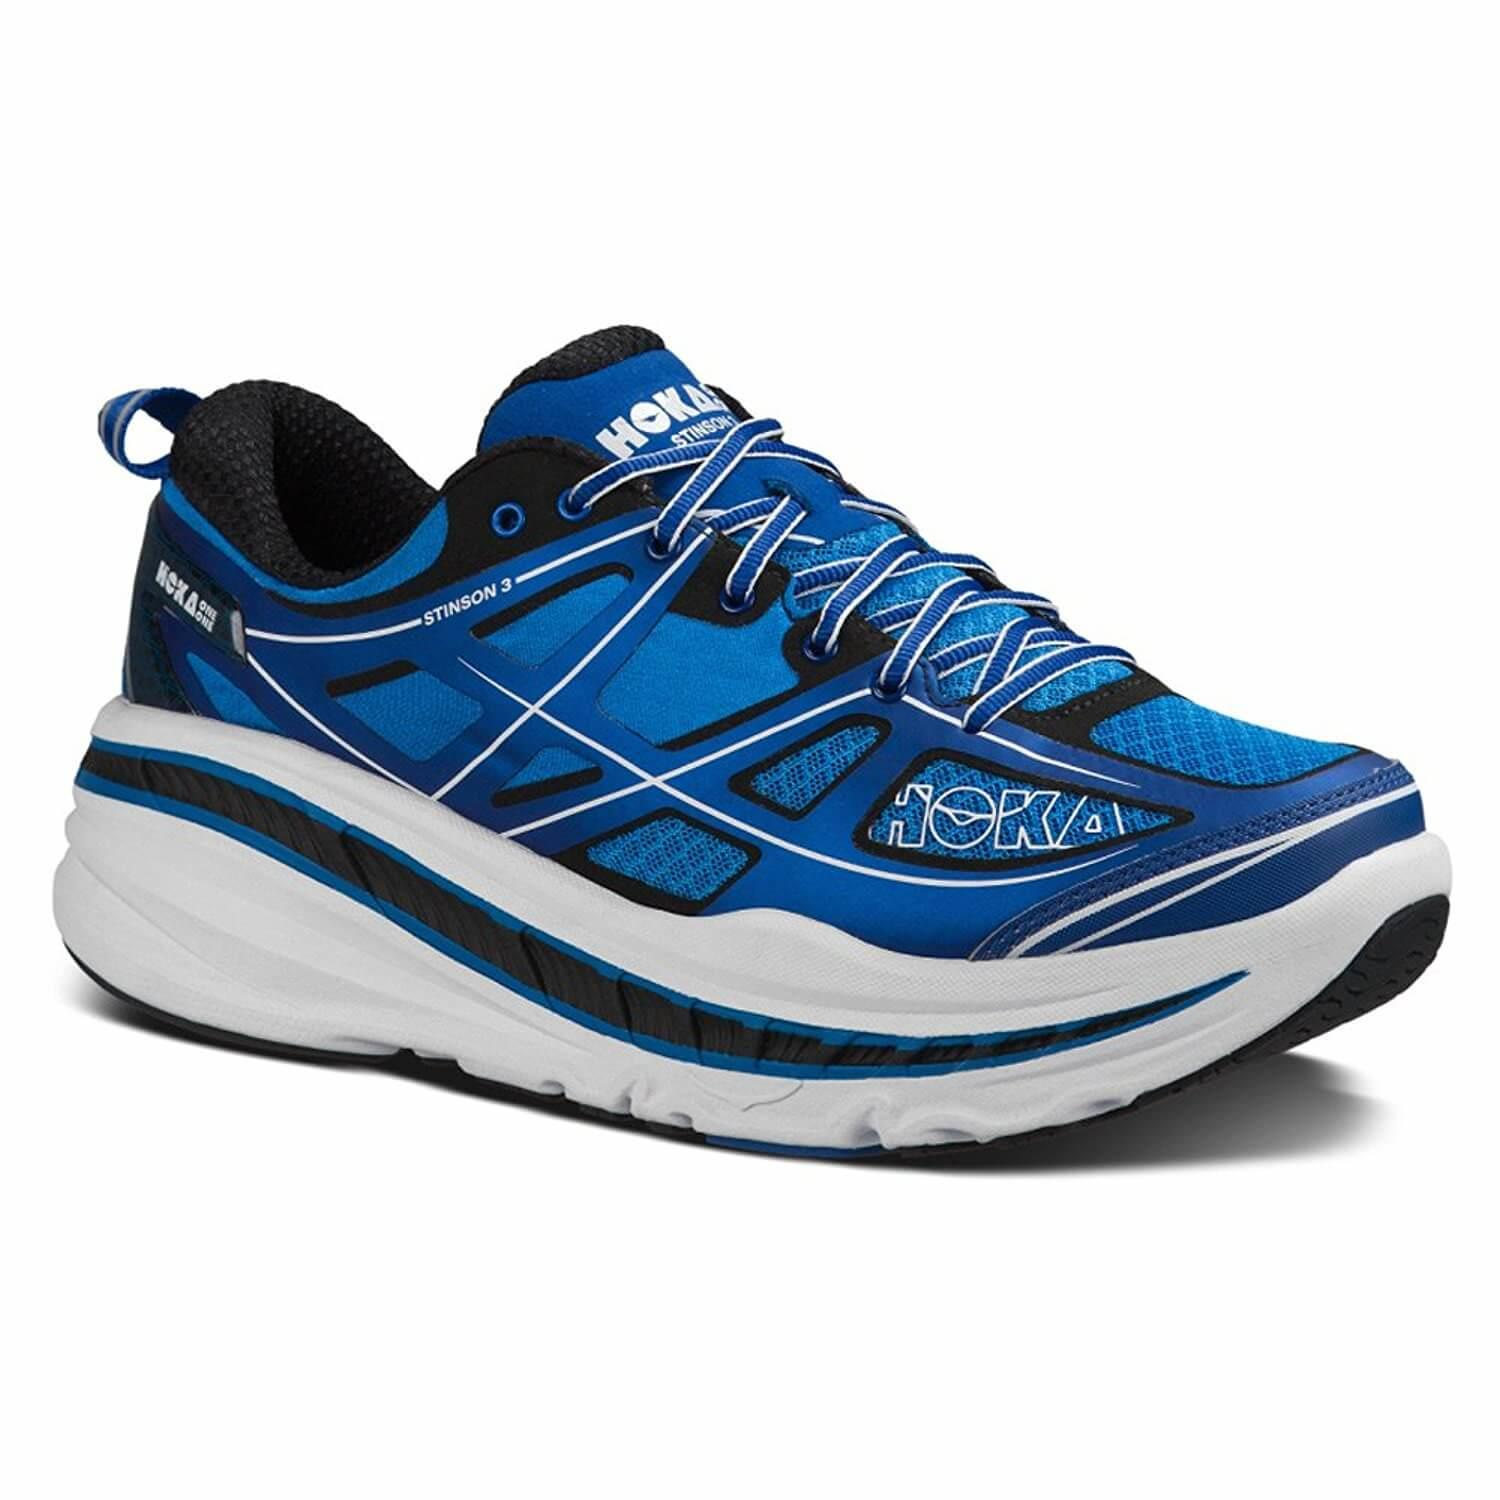 hoka one one stinson 3